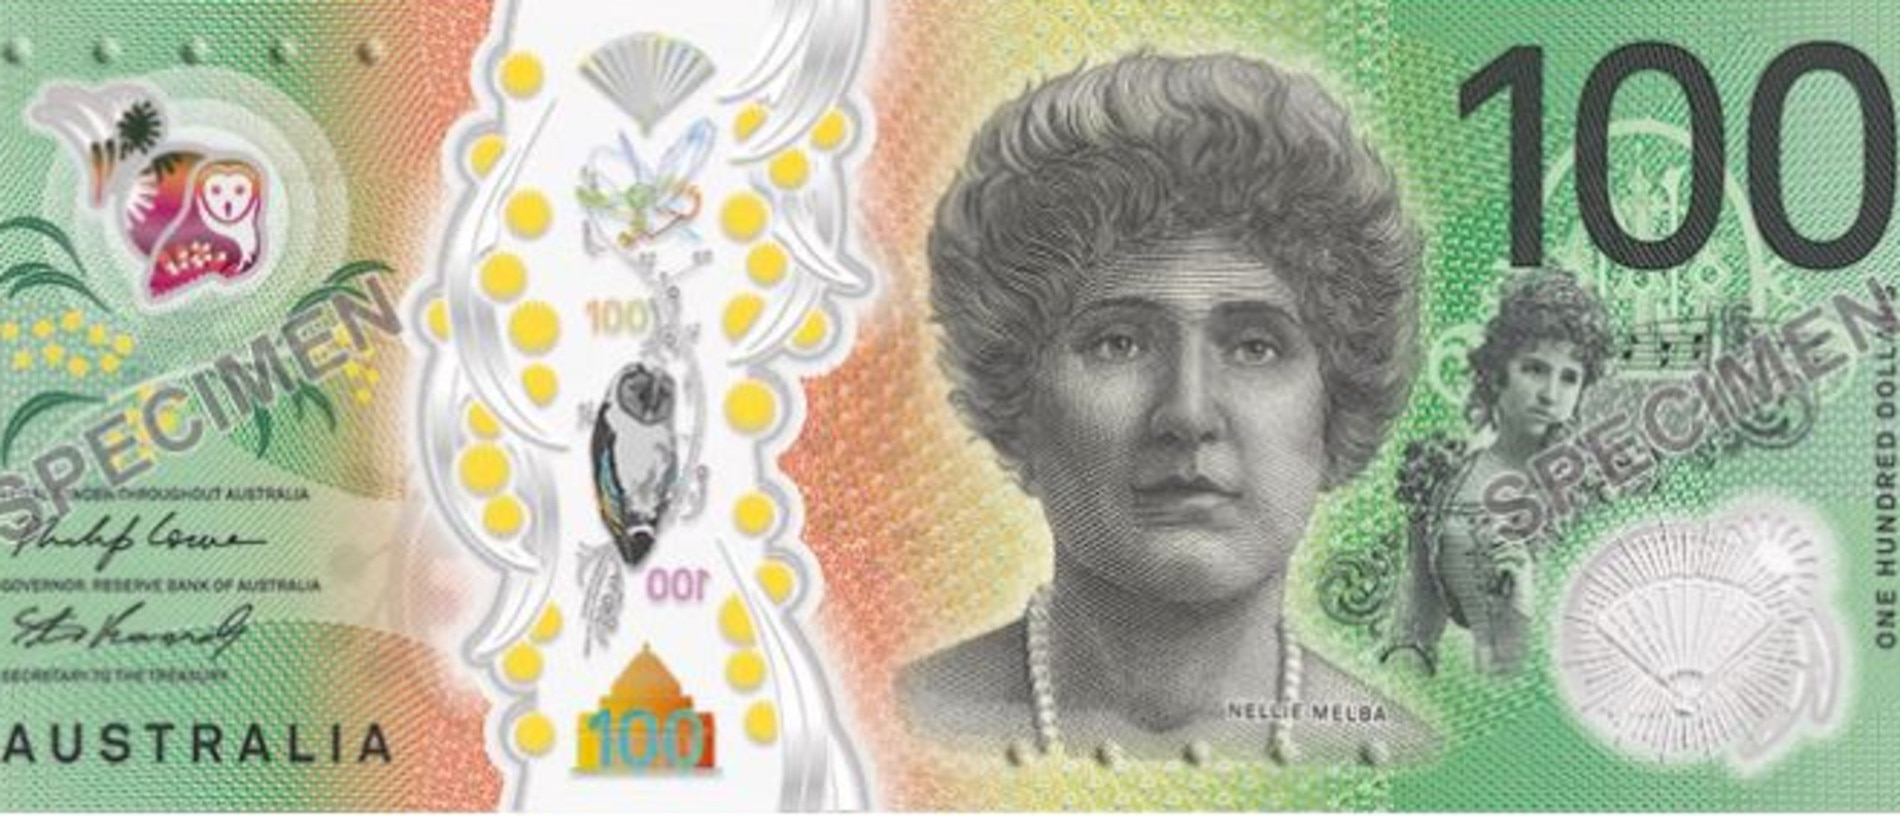 The new $100 banknote featuring Dame Nellie Melba on one side. Picture: Reserve Bank